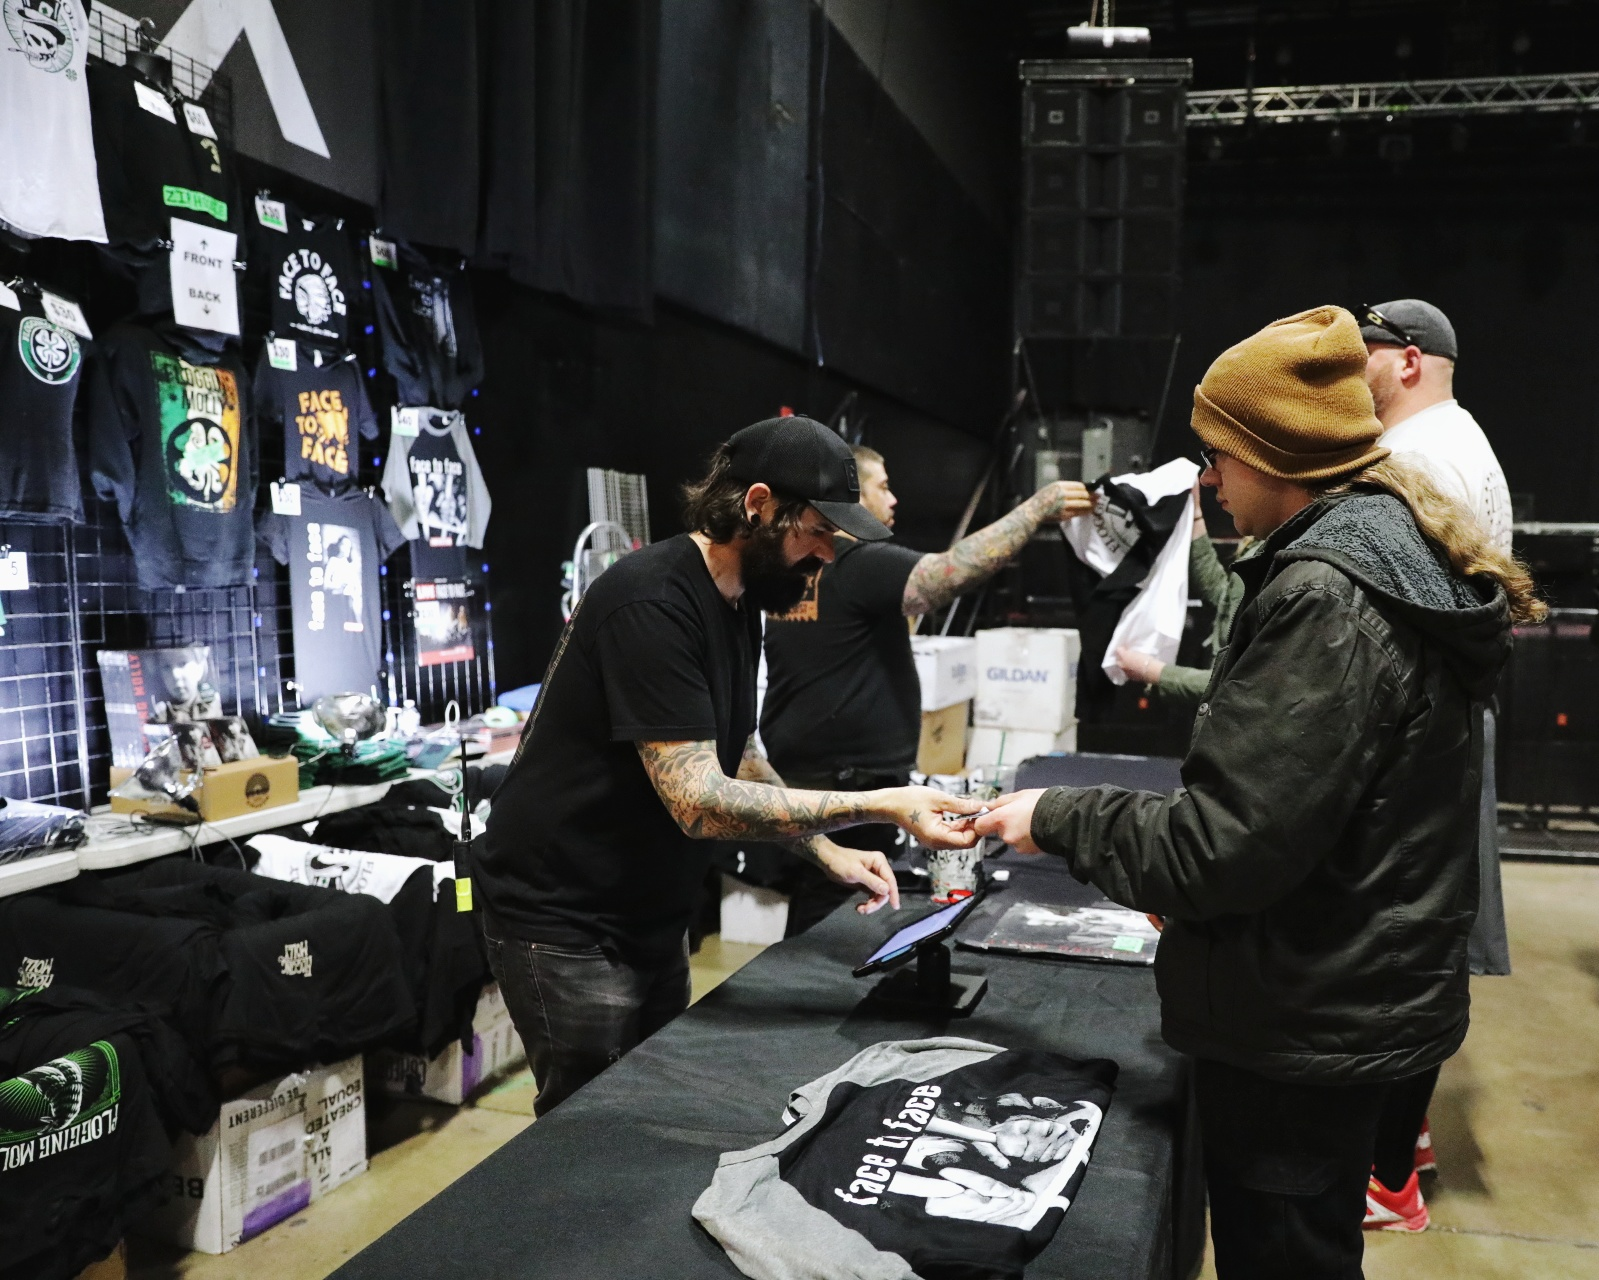 T-shirts are going fast! Photo: @Lmsorenson